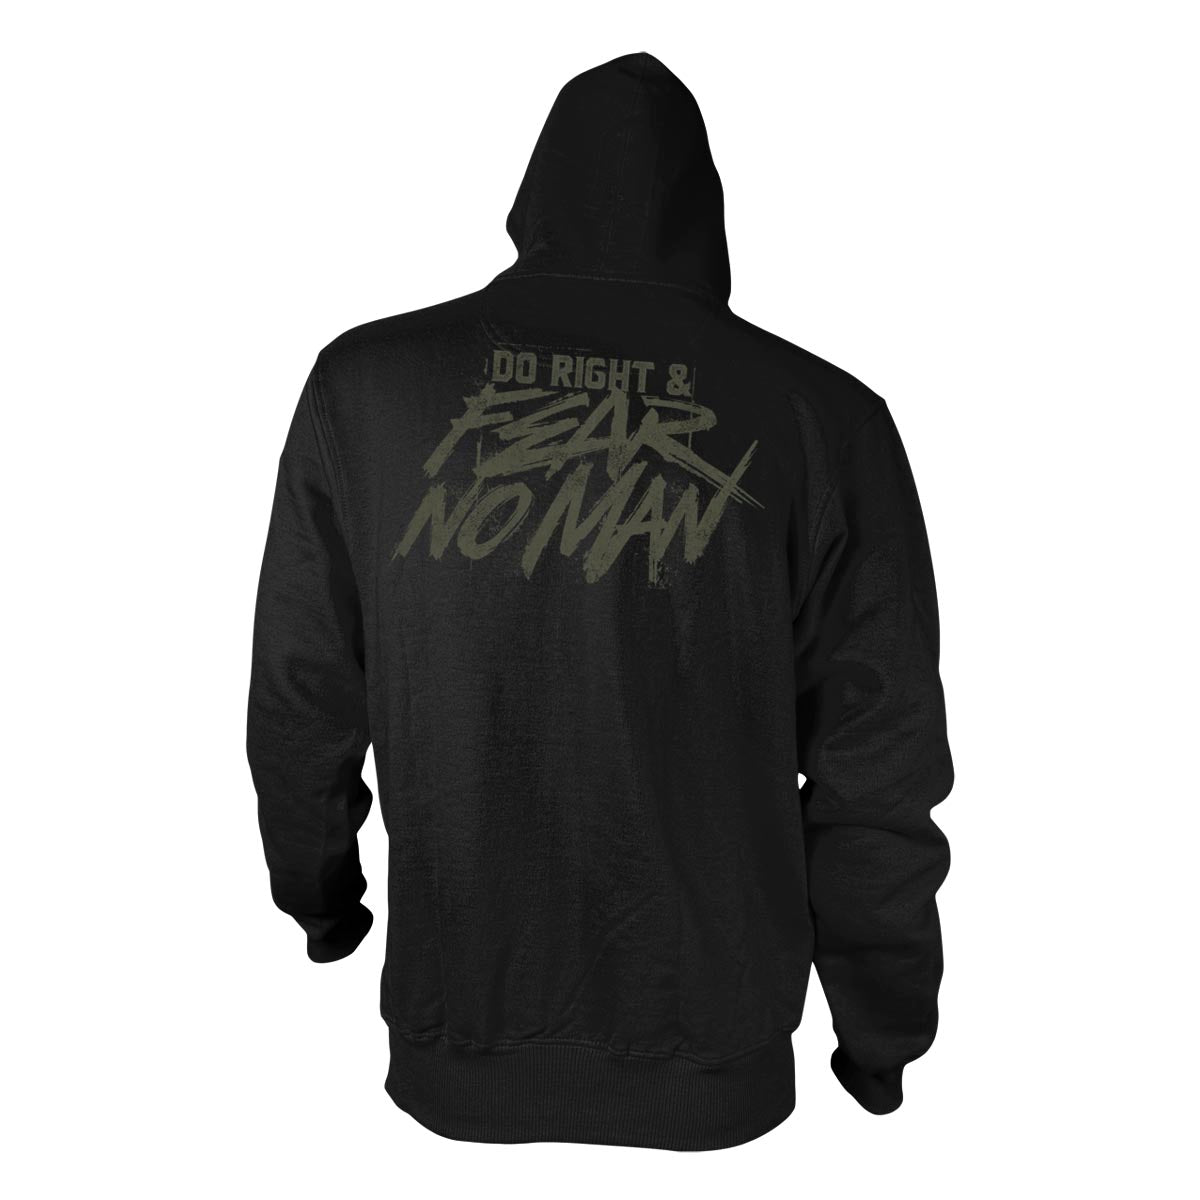 Do Right And Fear No Man - Hoodie - Black/Dark Olive - Hoodies - Pipe Hitters Union